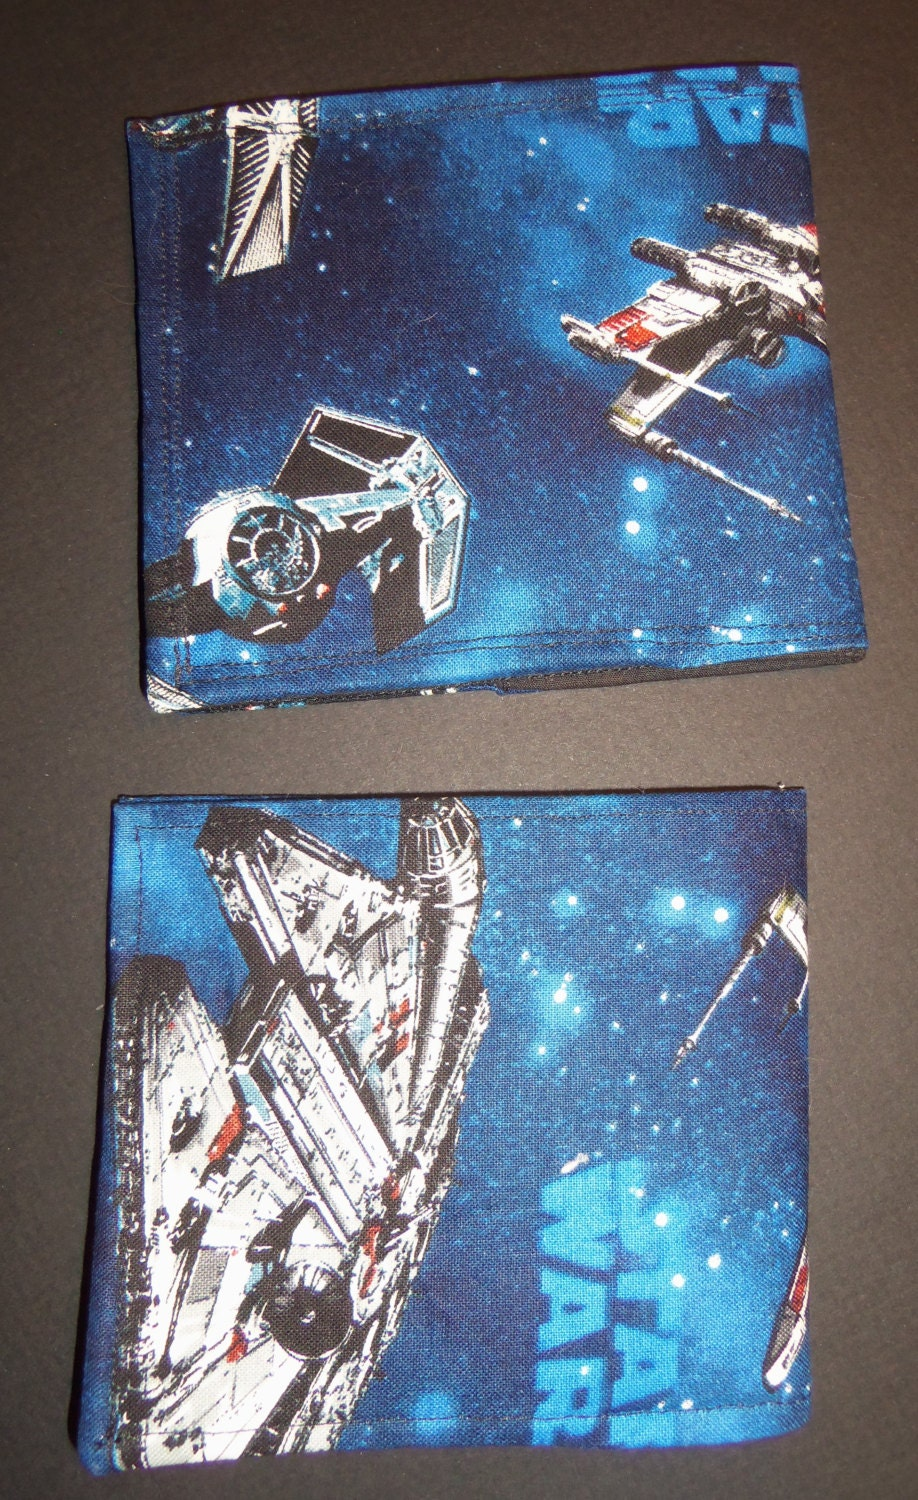 Star wars inspired space battle fabric wallets bi fold for Space inspired fabric